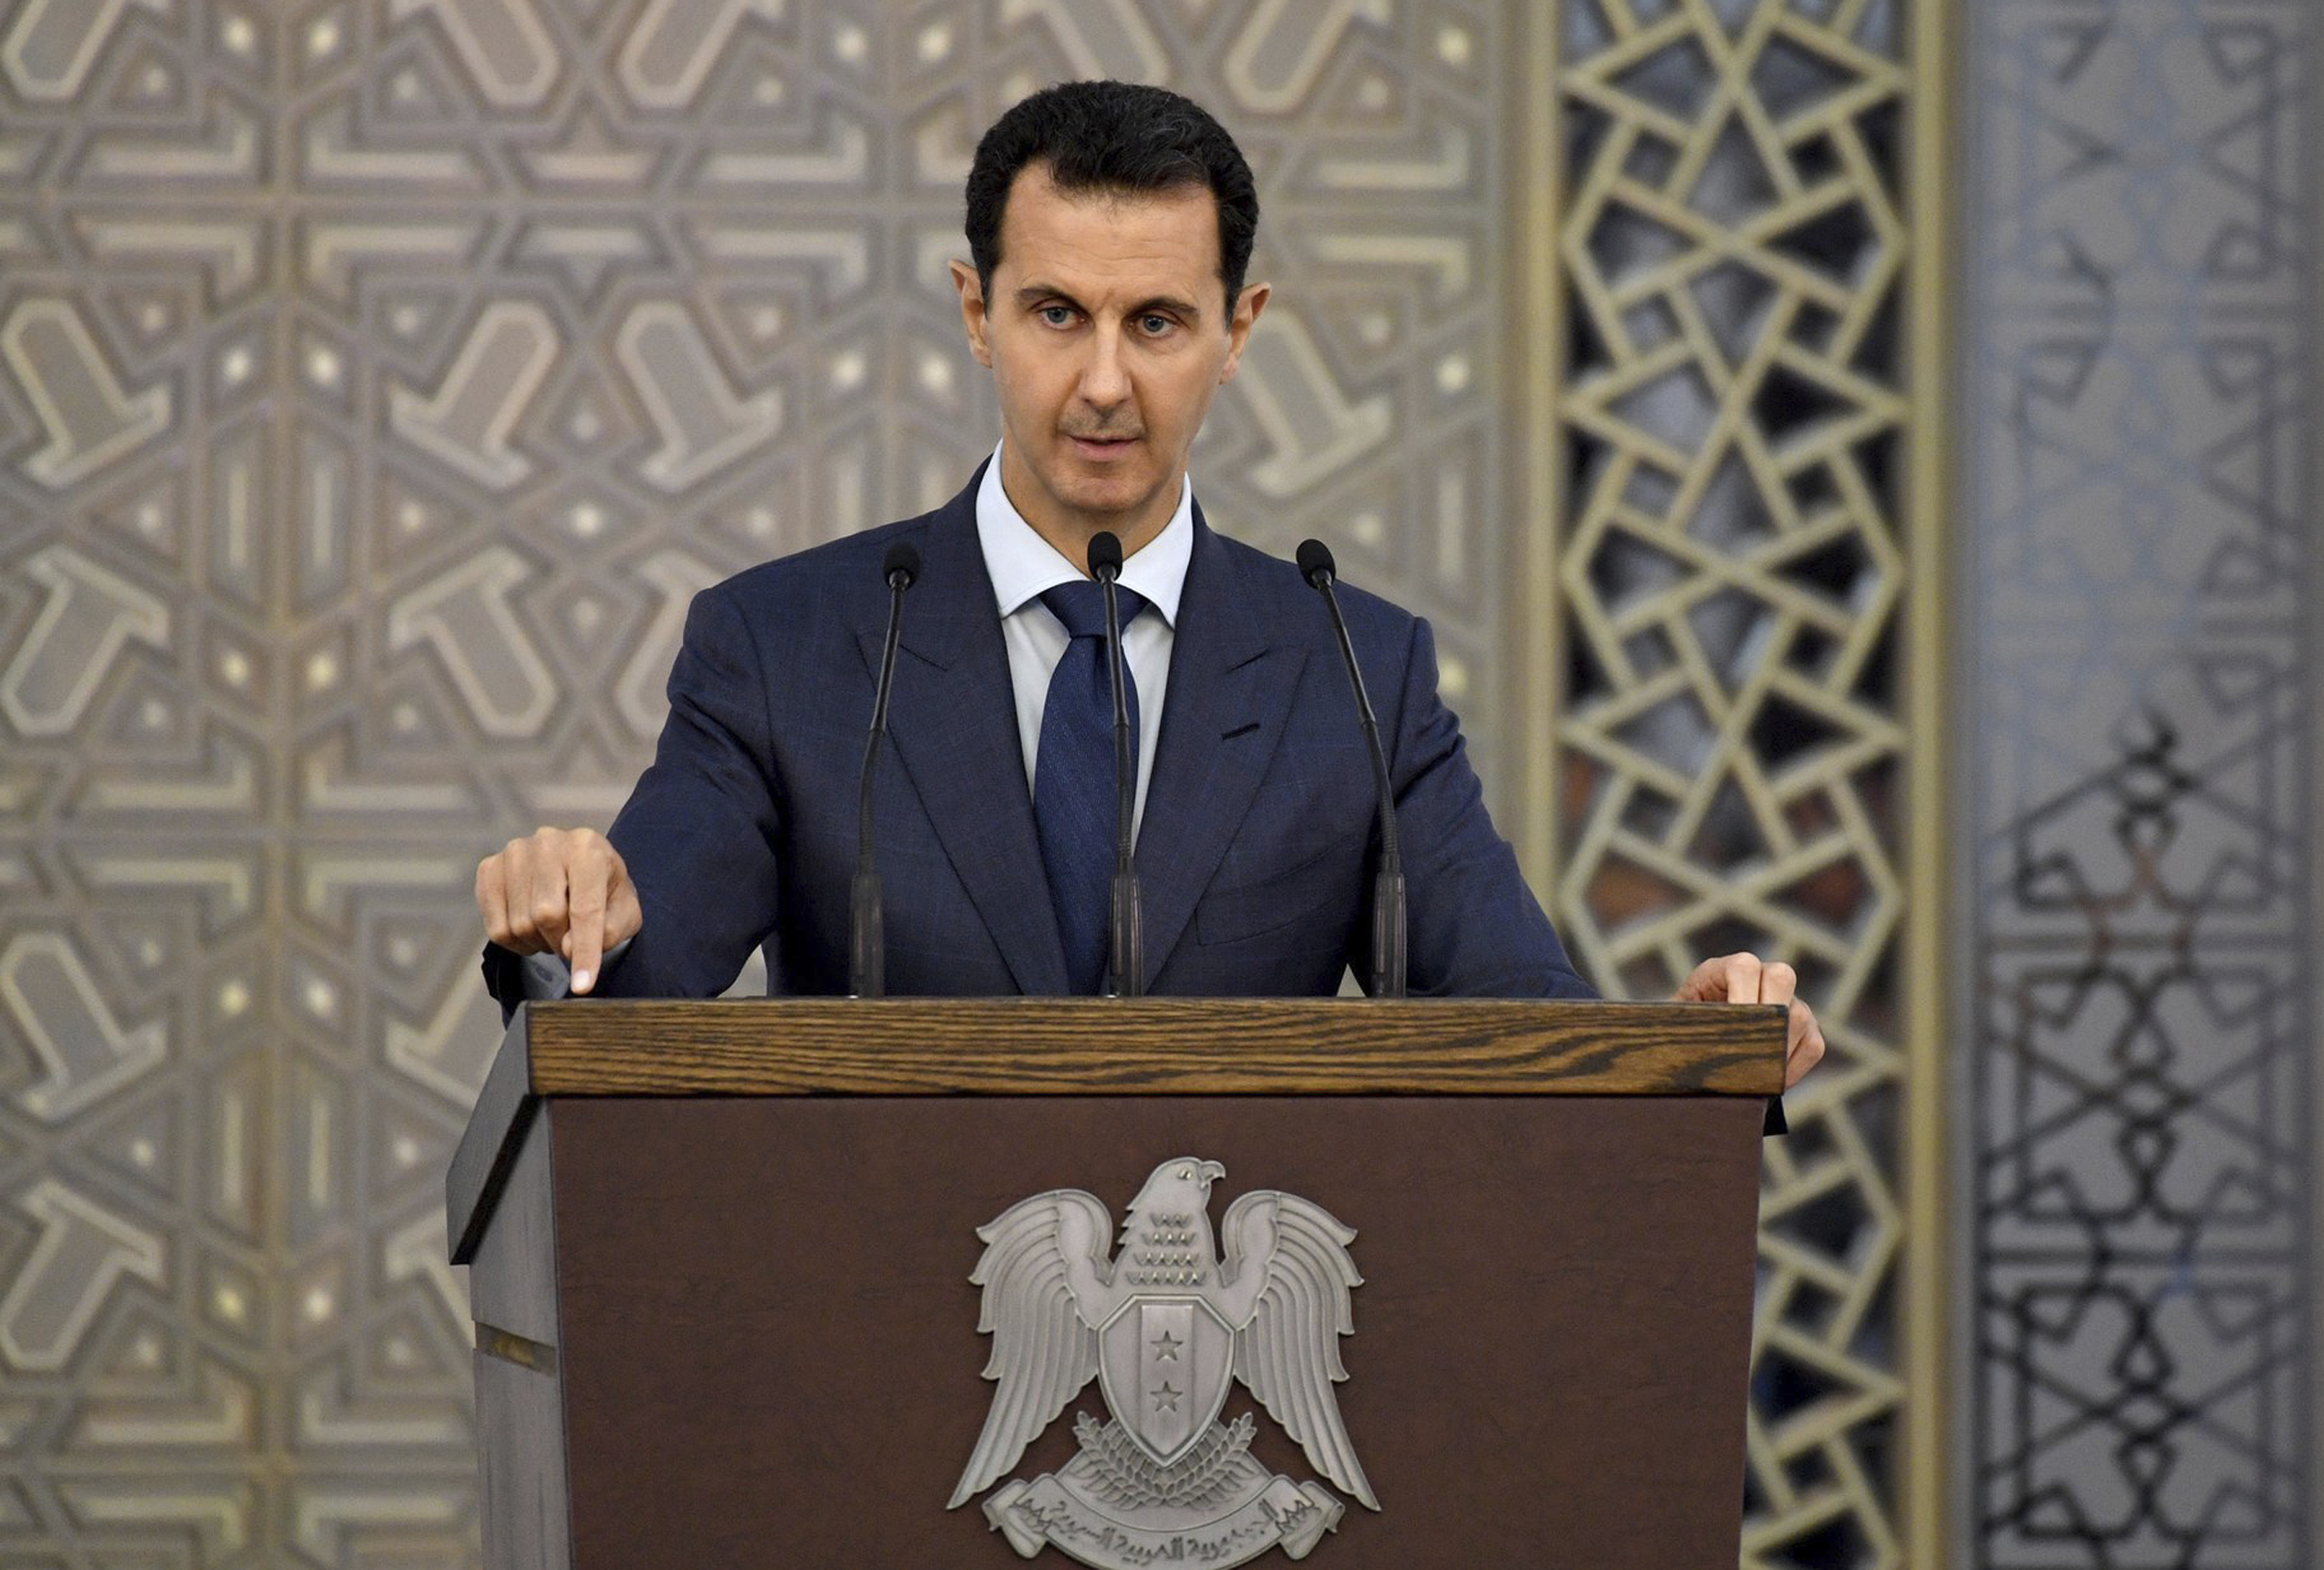 Assad is no longer pure evil, he's now being called the lesser evil